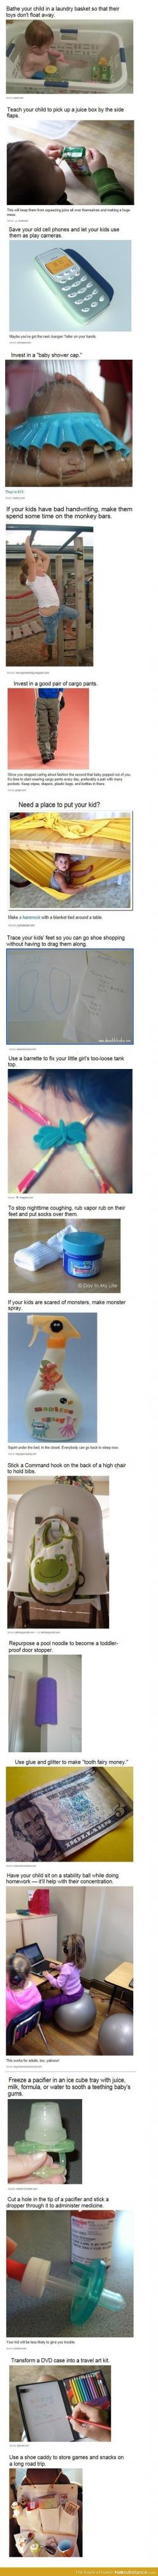 These are such good ideas!: Mom Hack, Lifehack, Parent Life Hack, Good Idea, Parent Hack, Parenting Hack, Life Hacks